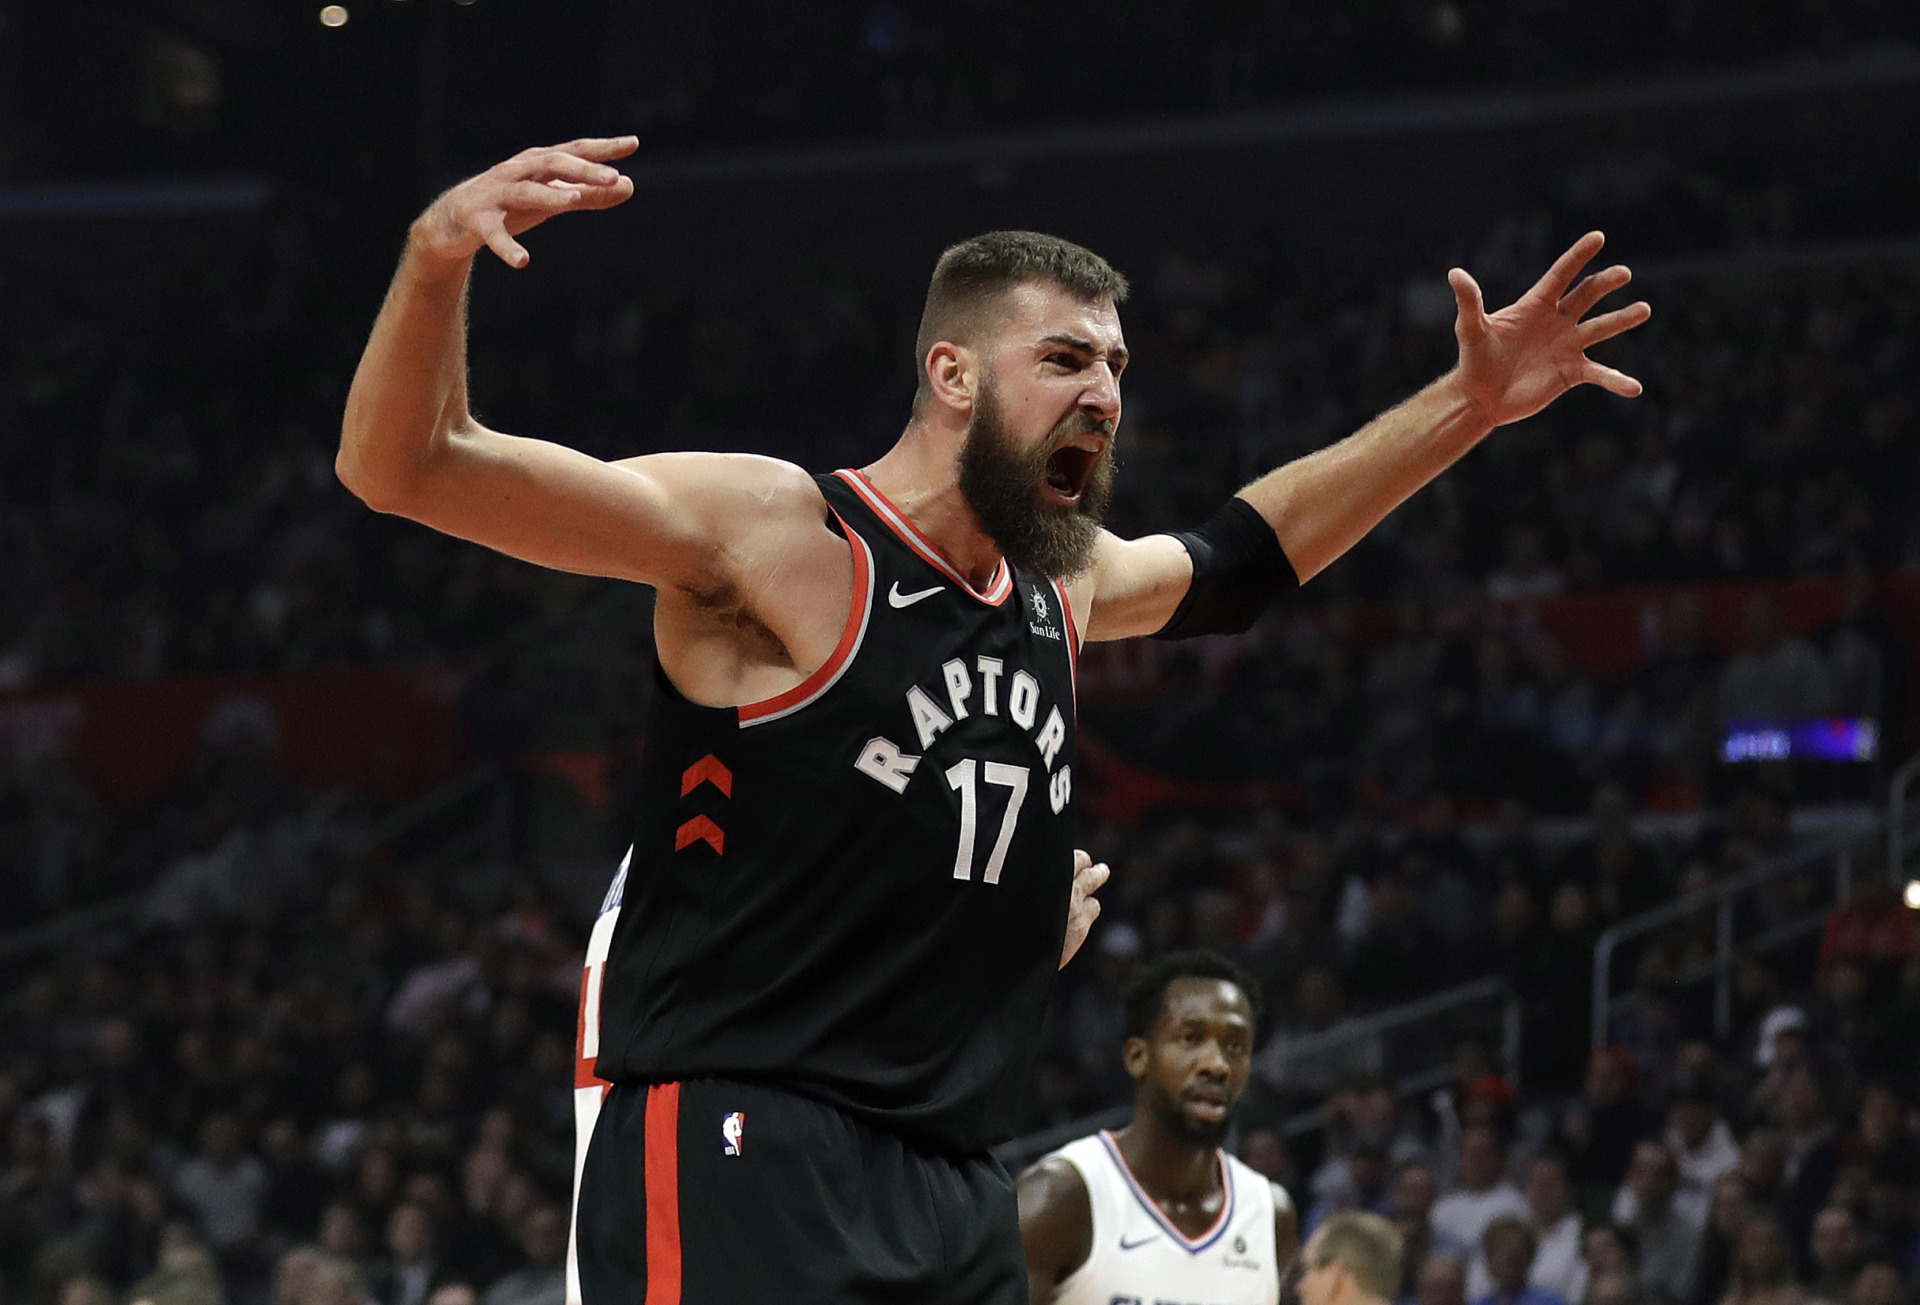 <span><strong>Toronto Raptors' Jonas Valanciunas (17) reacts after scoring against the Los Angeles Clippers during the first half of an NBA basketball game, Tuesday, Dec. 11, 2018, in Los Angeles.</strong> (AP Photo/Marcio Jose Sanchez)</span>